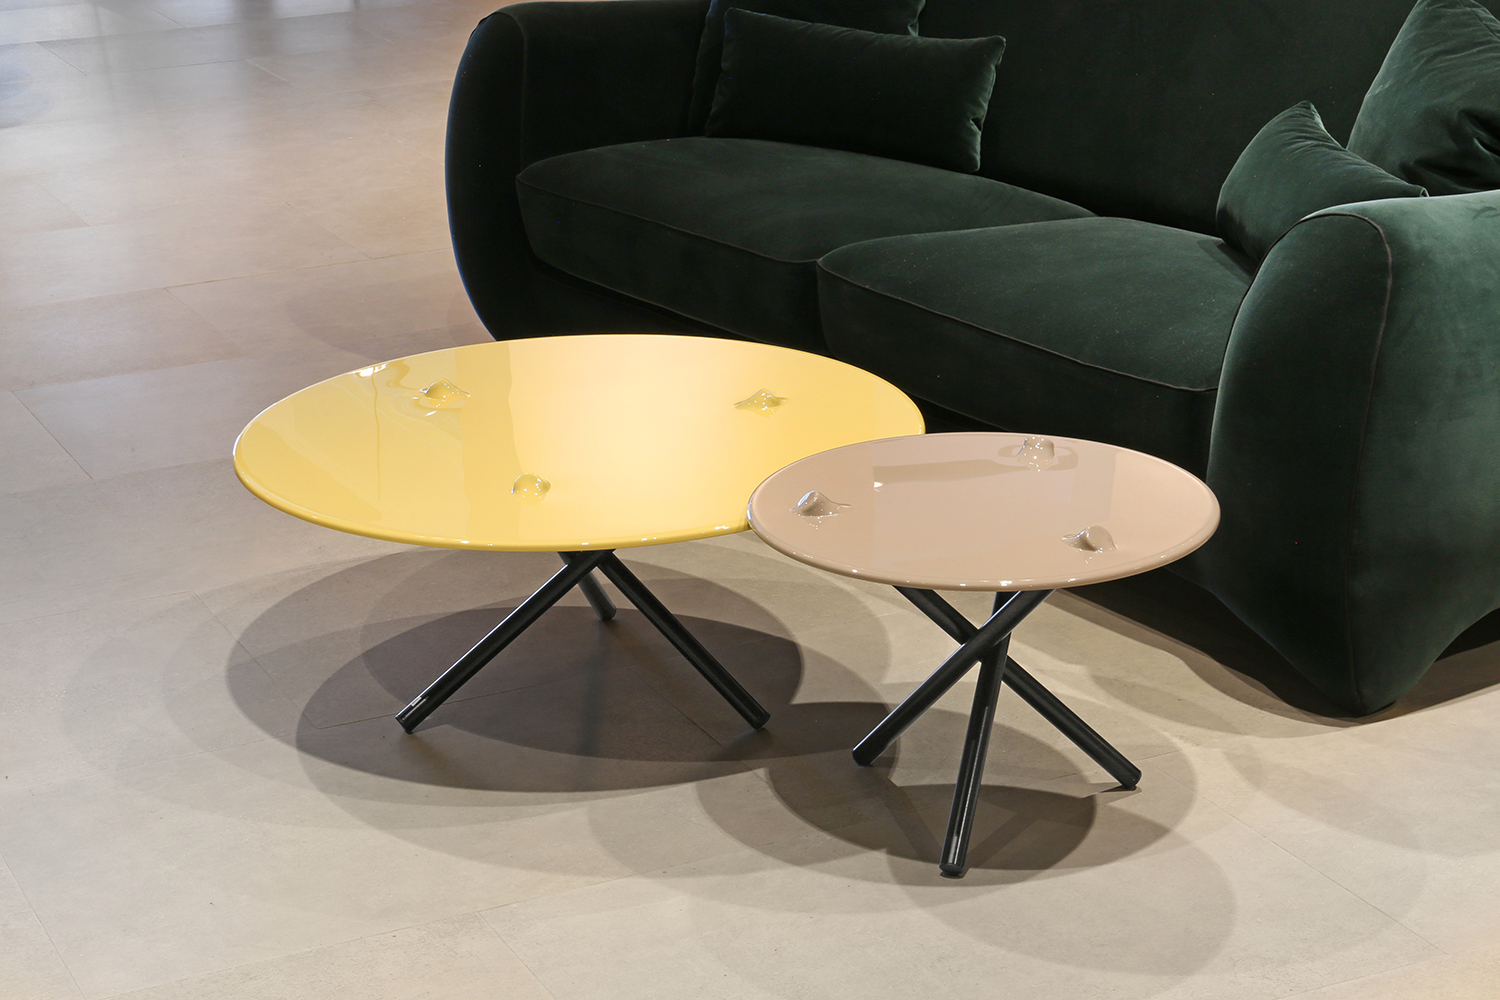 PUSH coffee and side table.